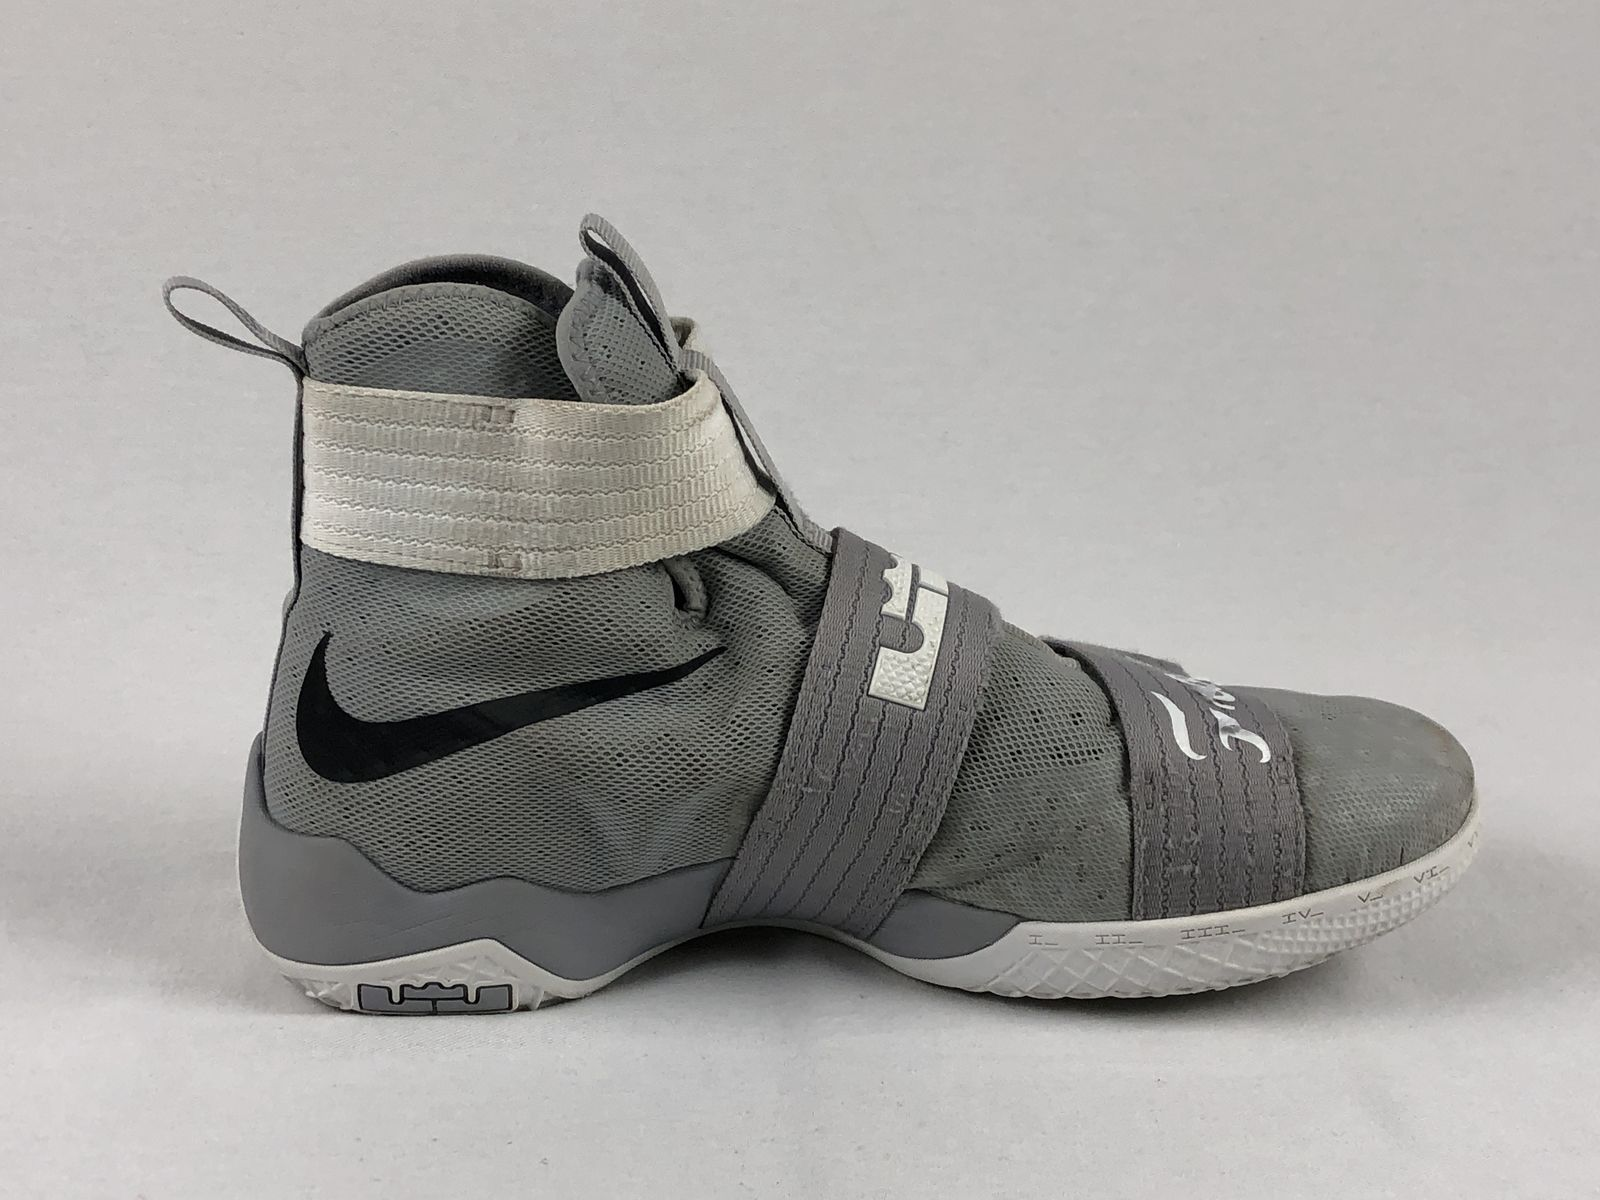 7d05b2f98b9c Nike Lebron Soldier 10 - Gray Basketball Shoes (Men s 13) - Used